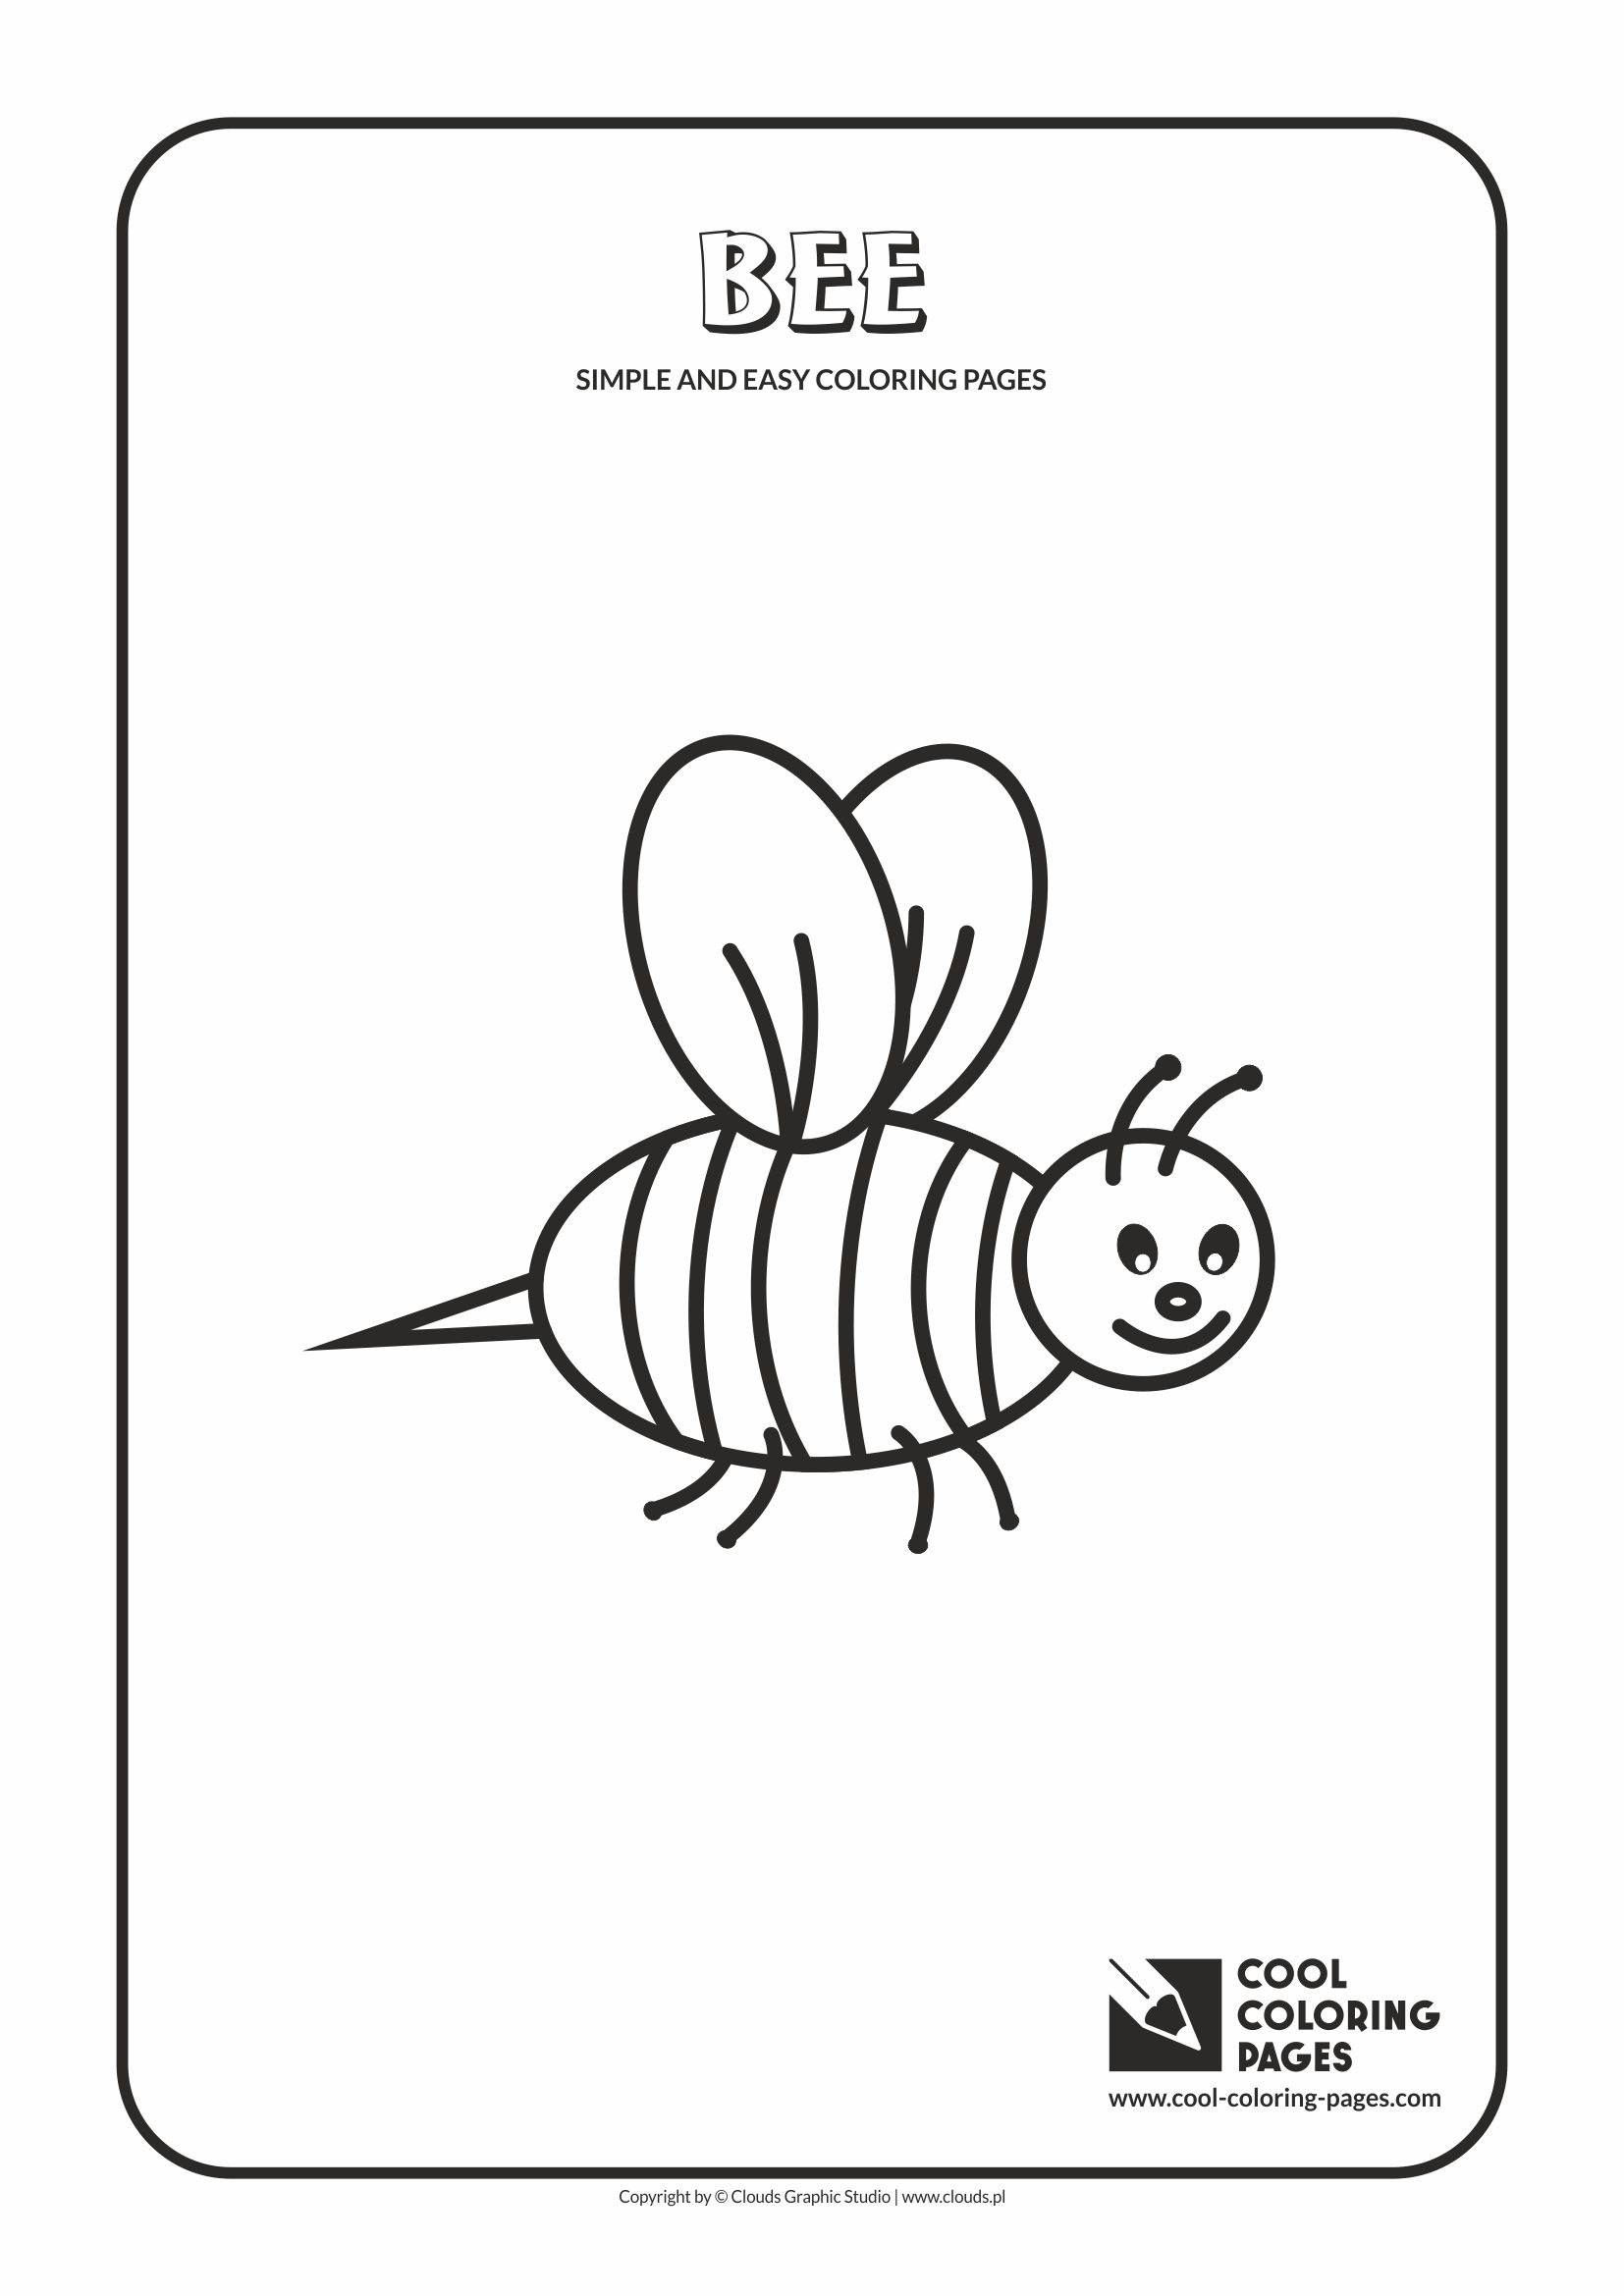 Simple Bee Coloring Pages | Super Duper Coloring